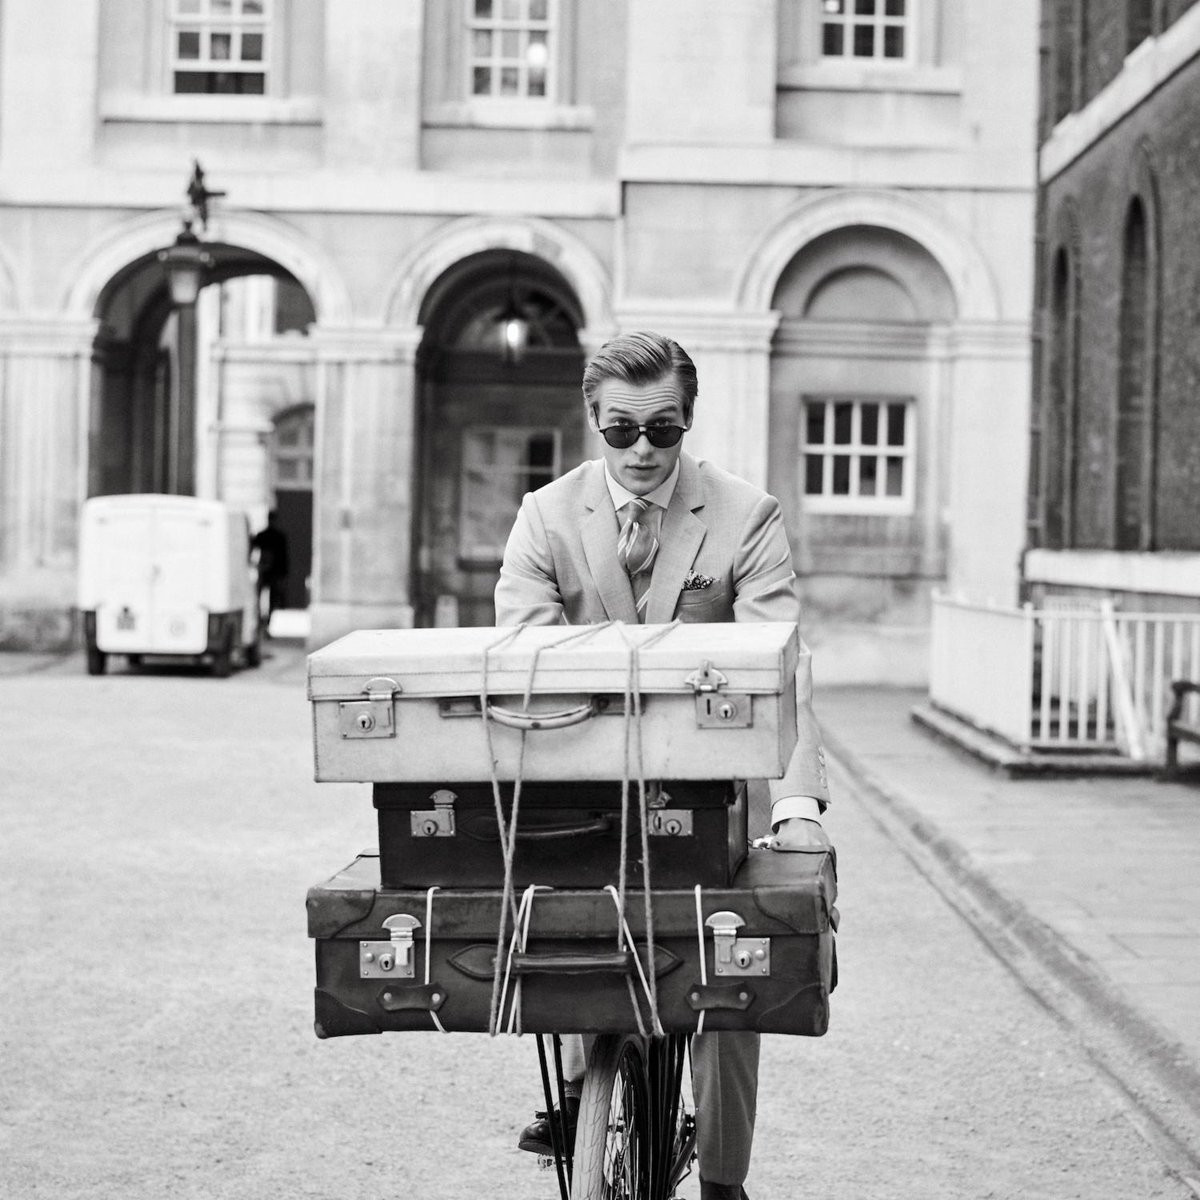 Packed and ready for the weekend. #Hackett #FridayFeeling https://t.co/9UrkYXN5uE